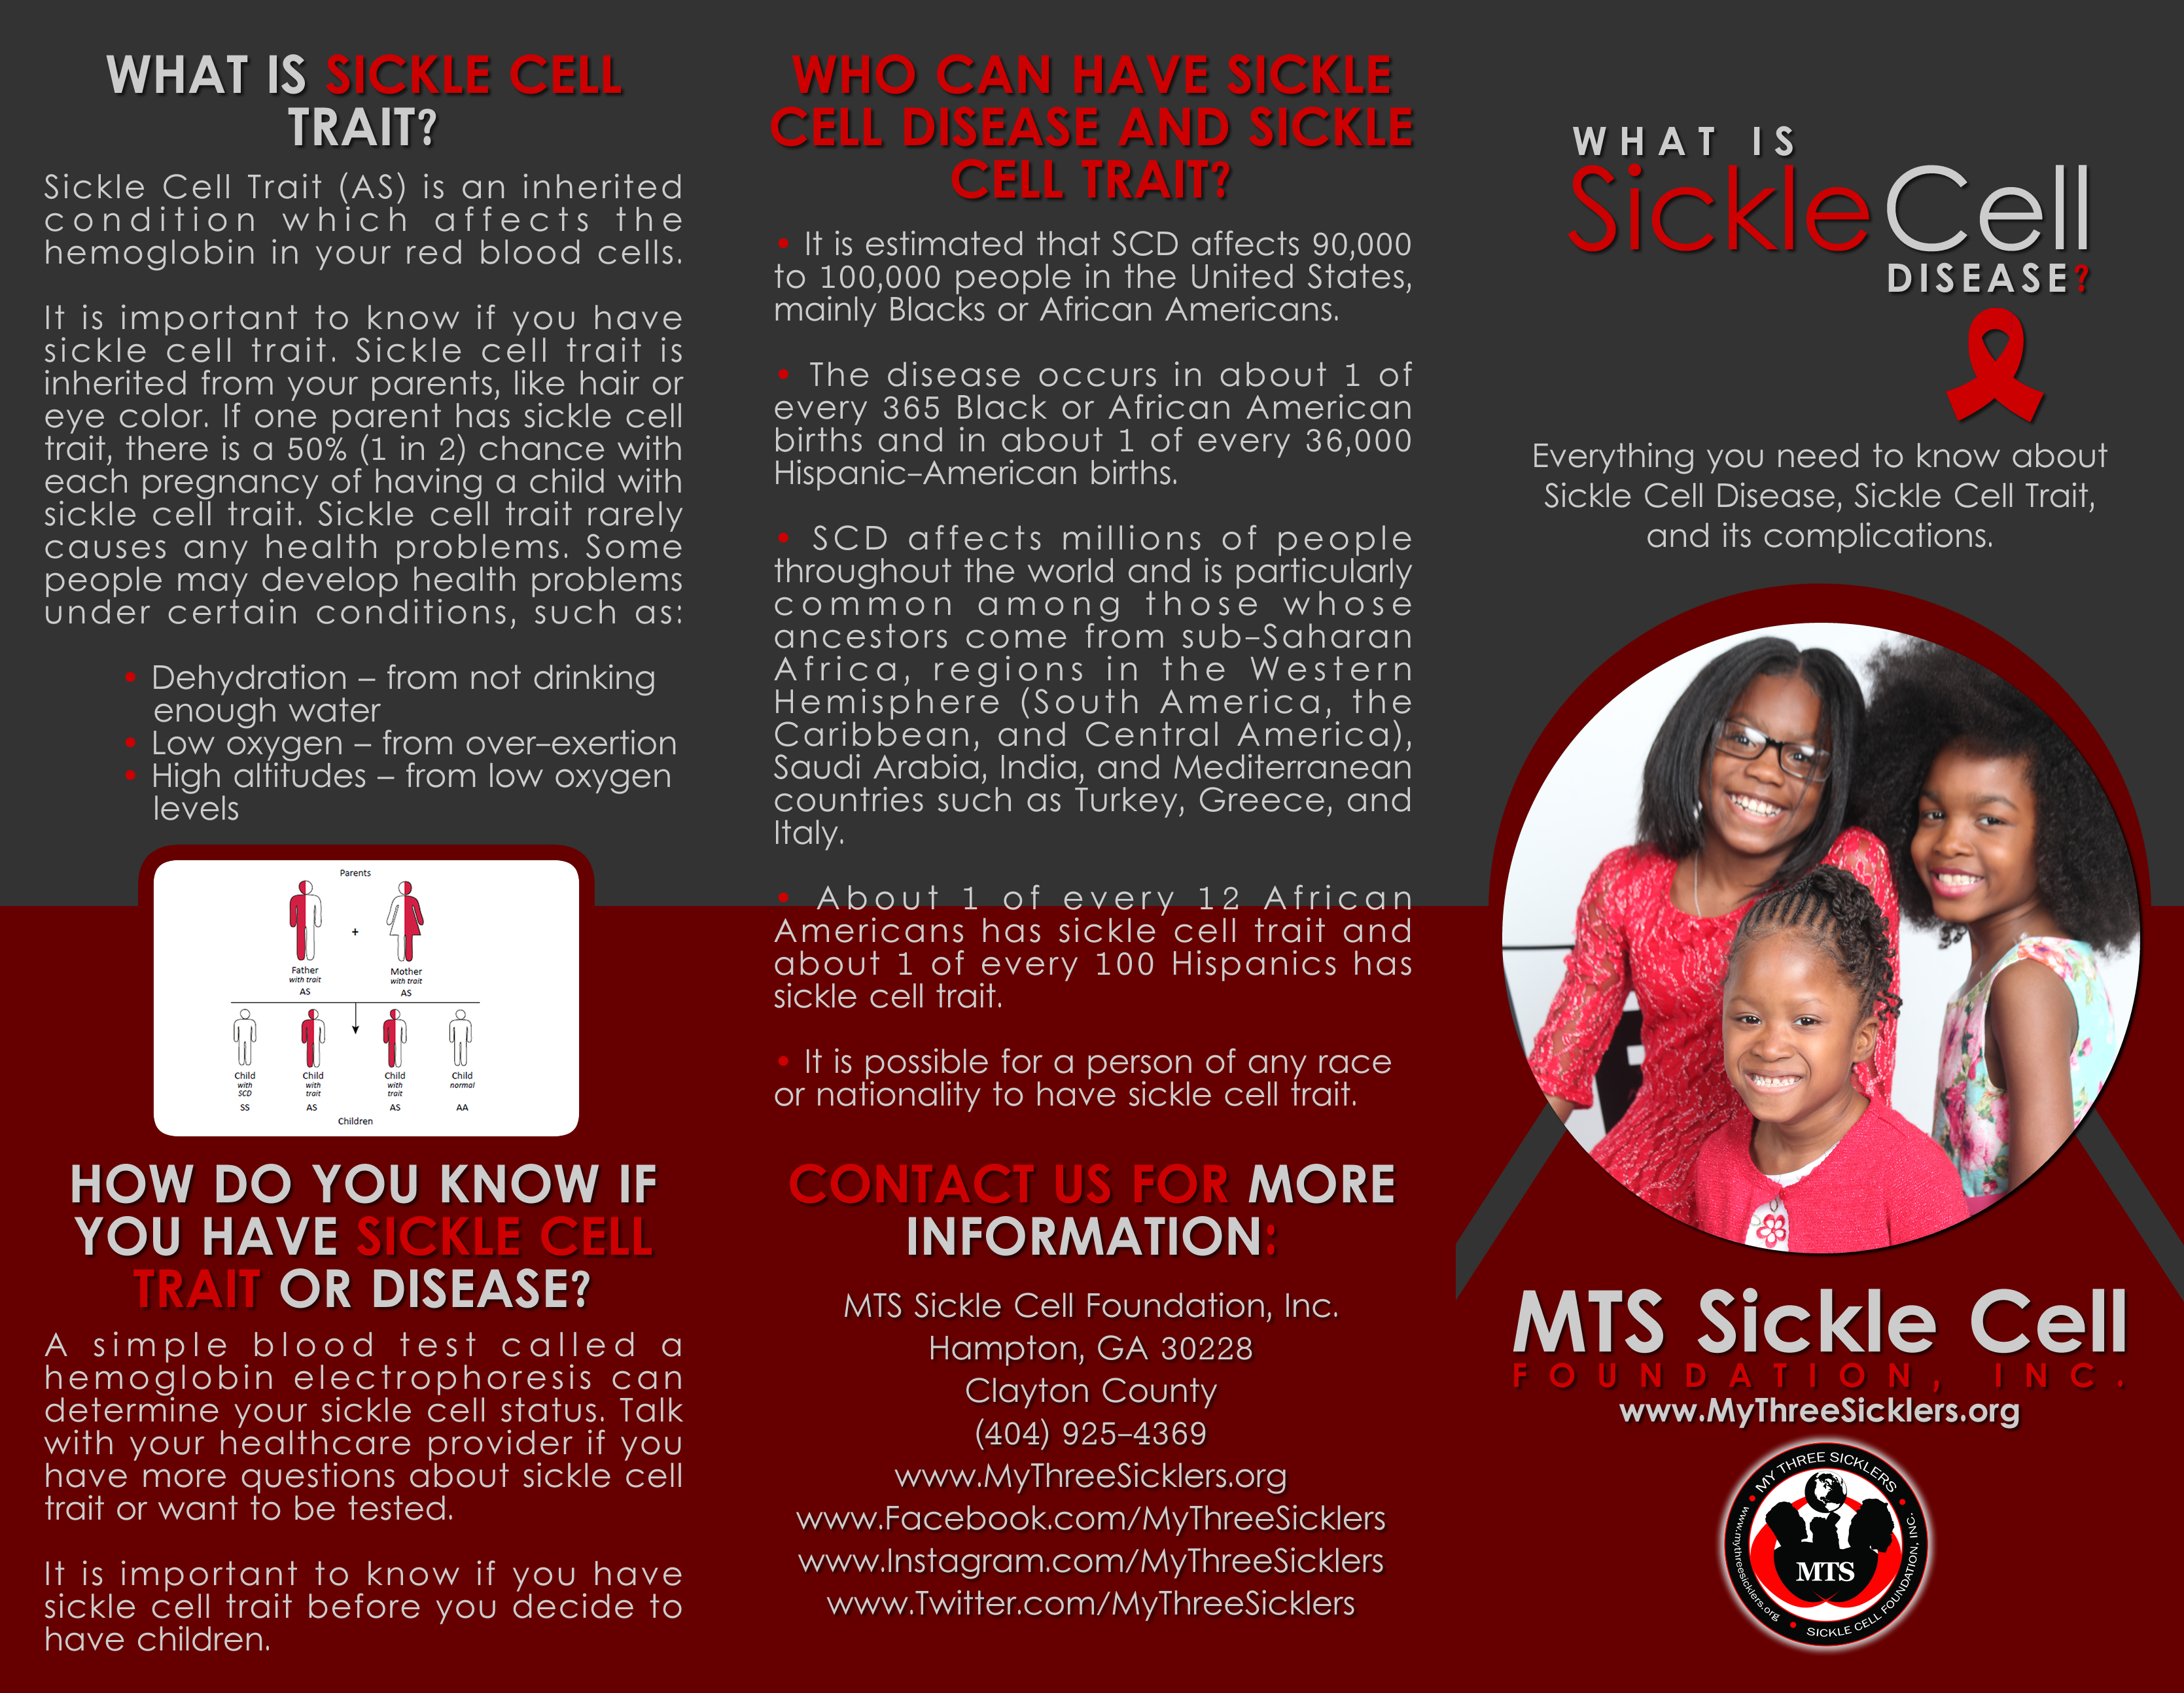 mts-sickle-cell-brochure-front-page